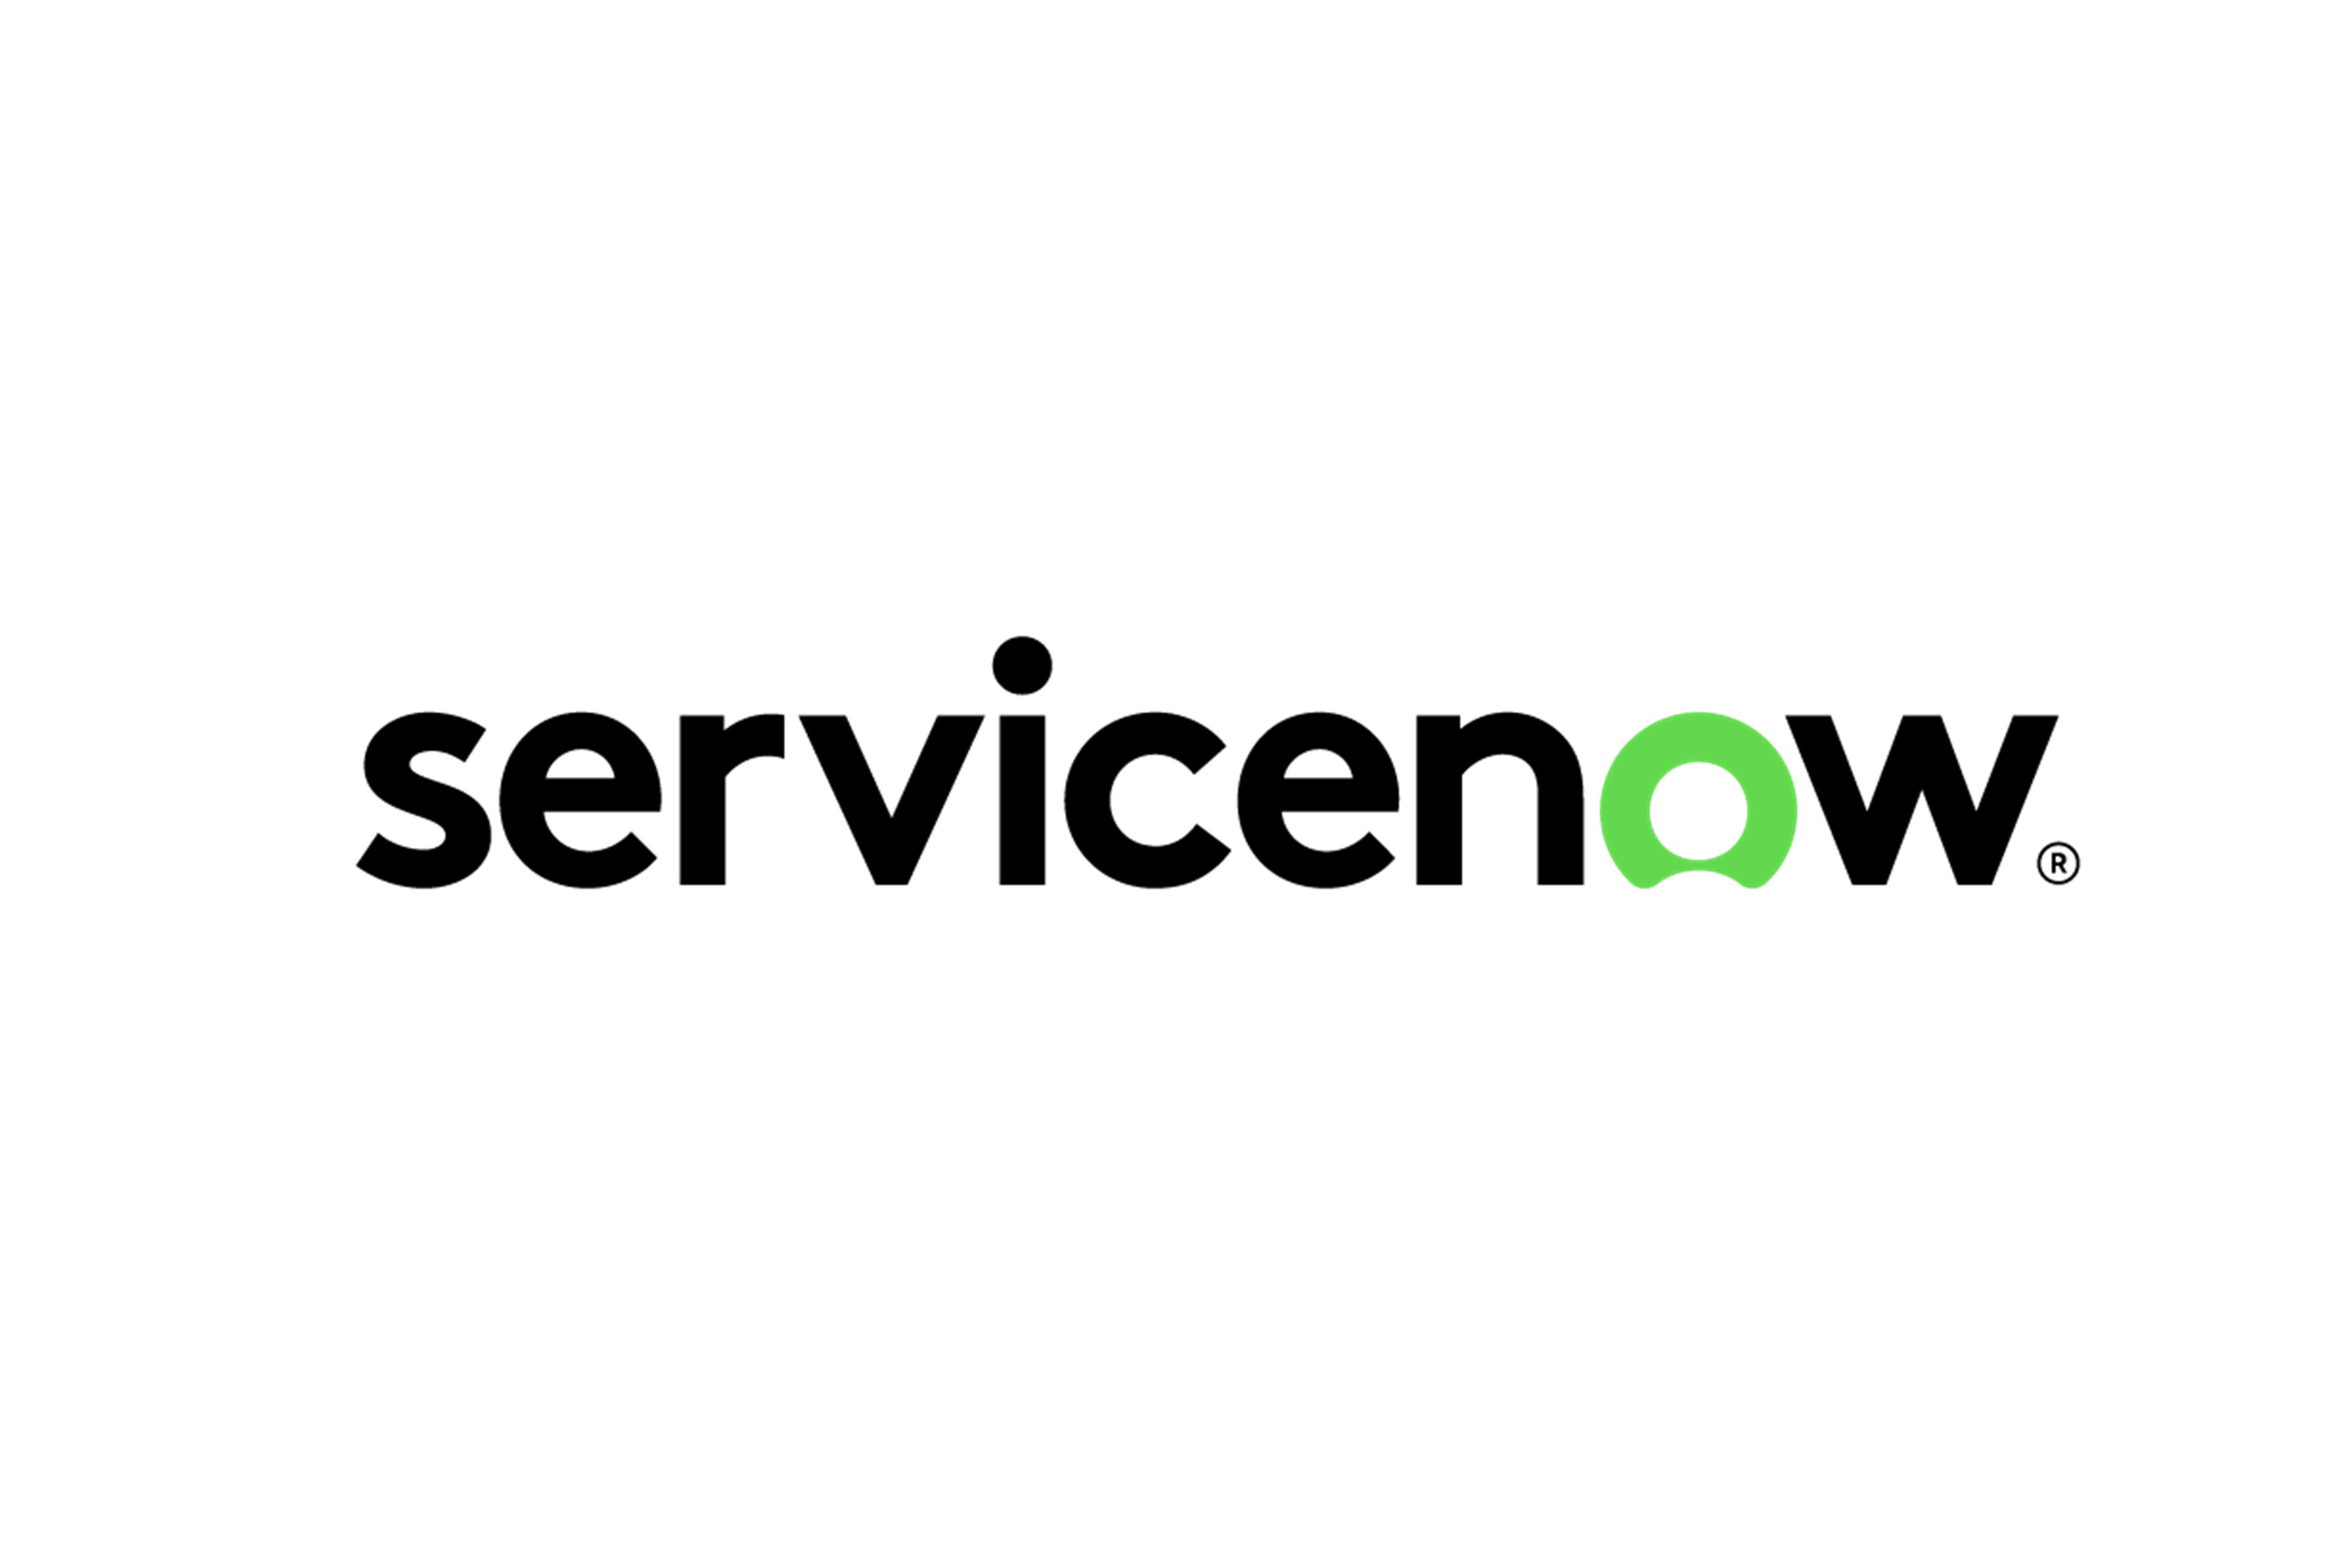 Service nowのロゴ